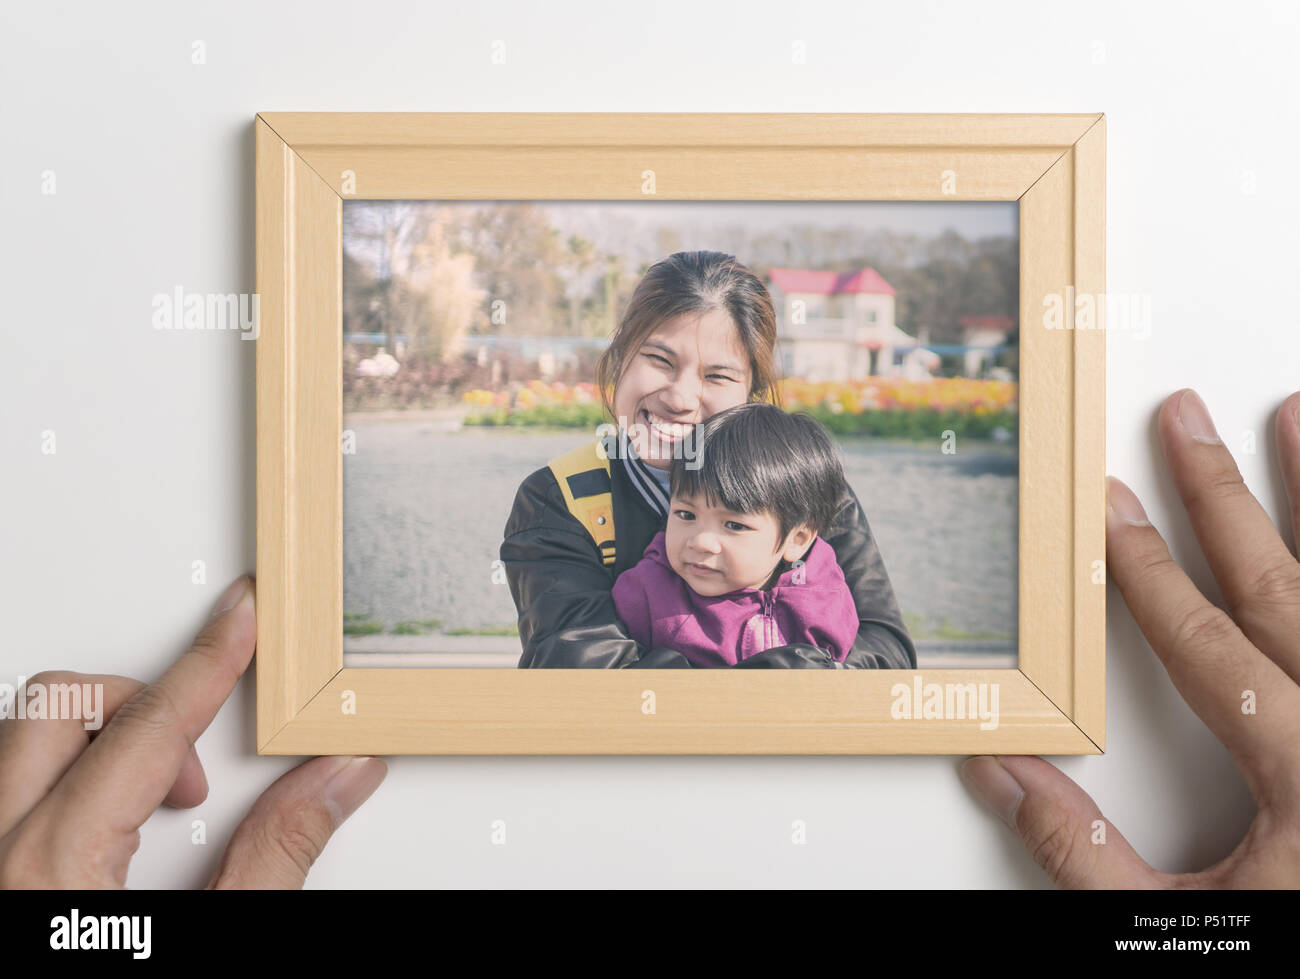 Daddy Hand Holding A Picture Of Mother And Son In Frame Stock Photo